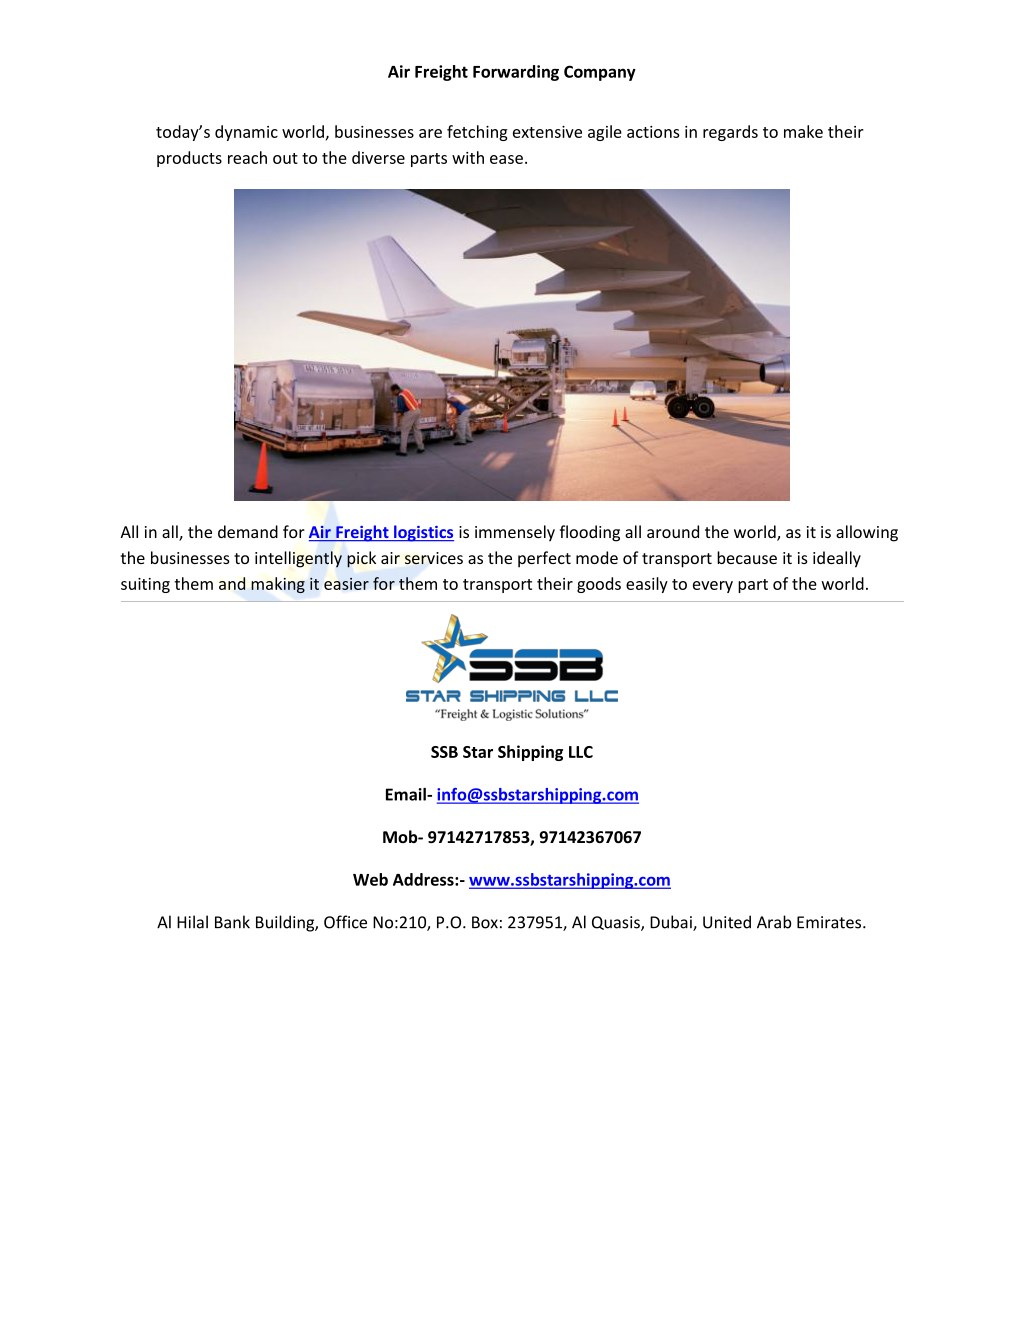 PPT - Air freight forwarding company PowerPoint Presentation